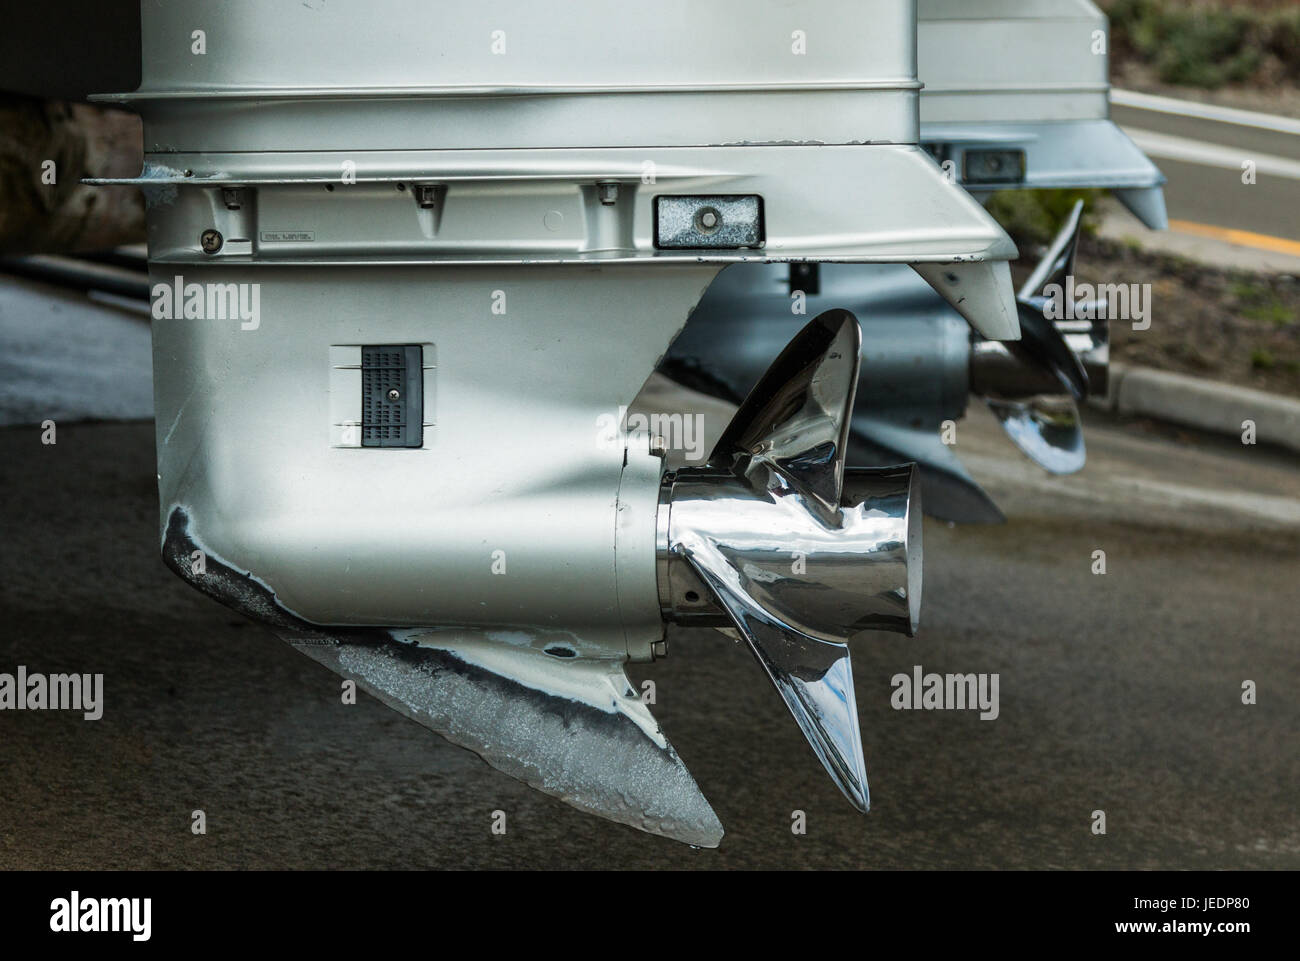 Twin propellers on outboard motors looking shiny and clean. - Stock Image